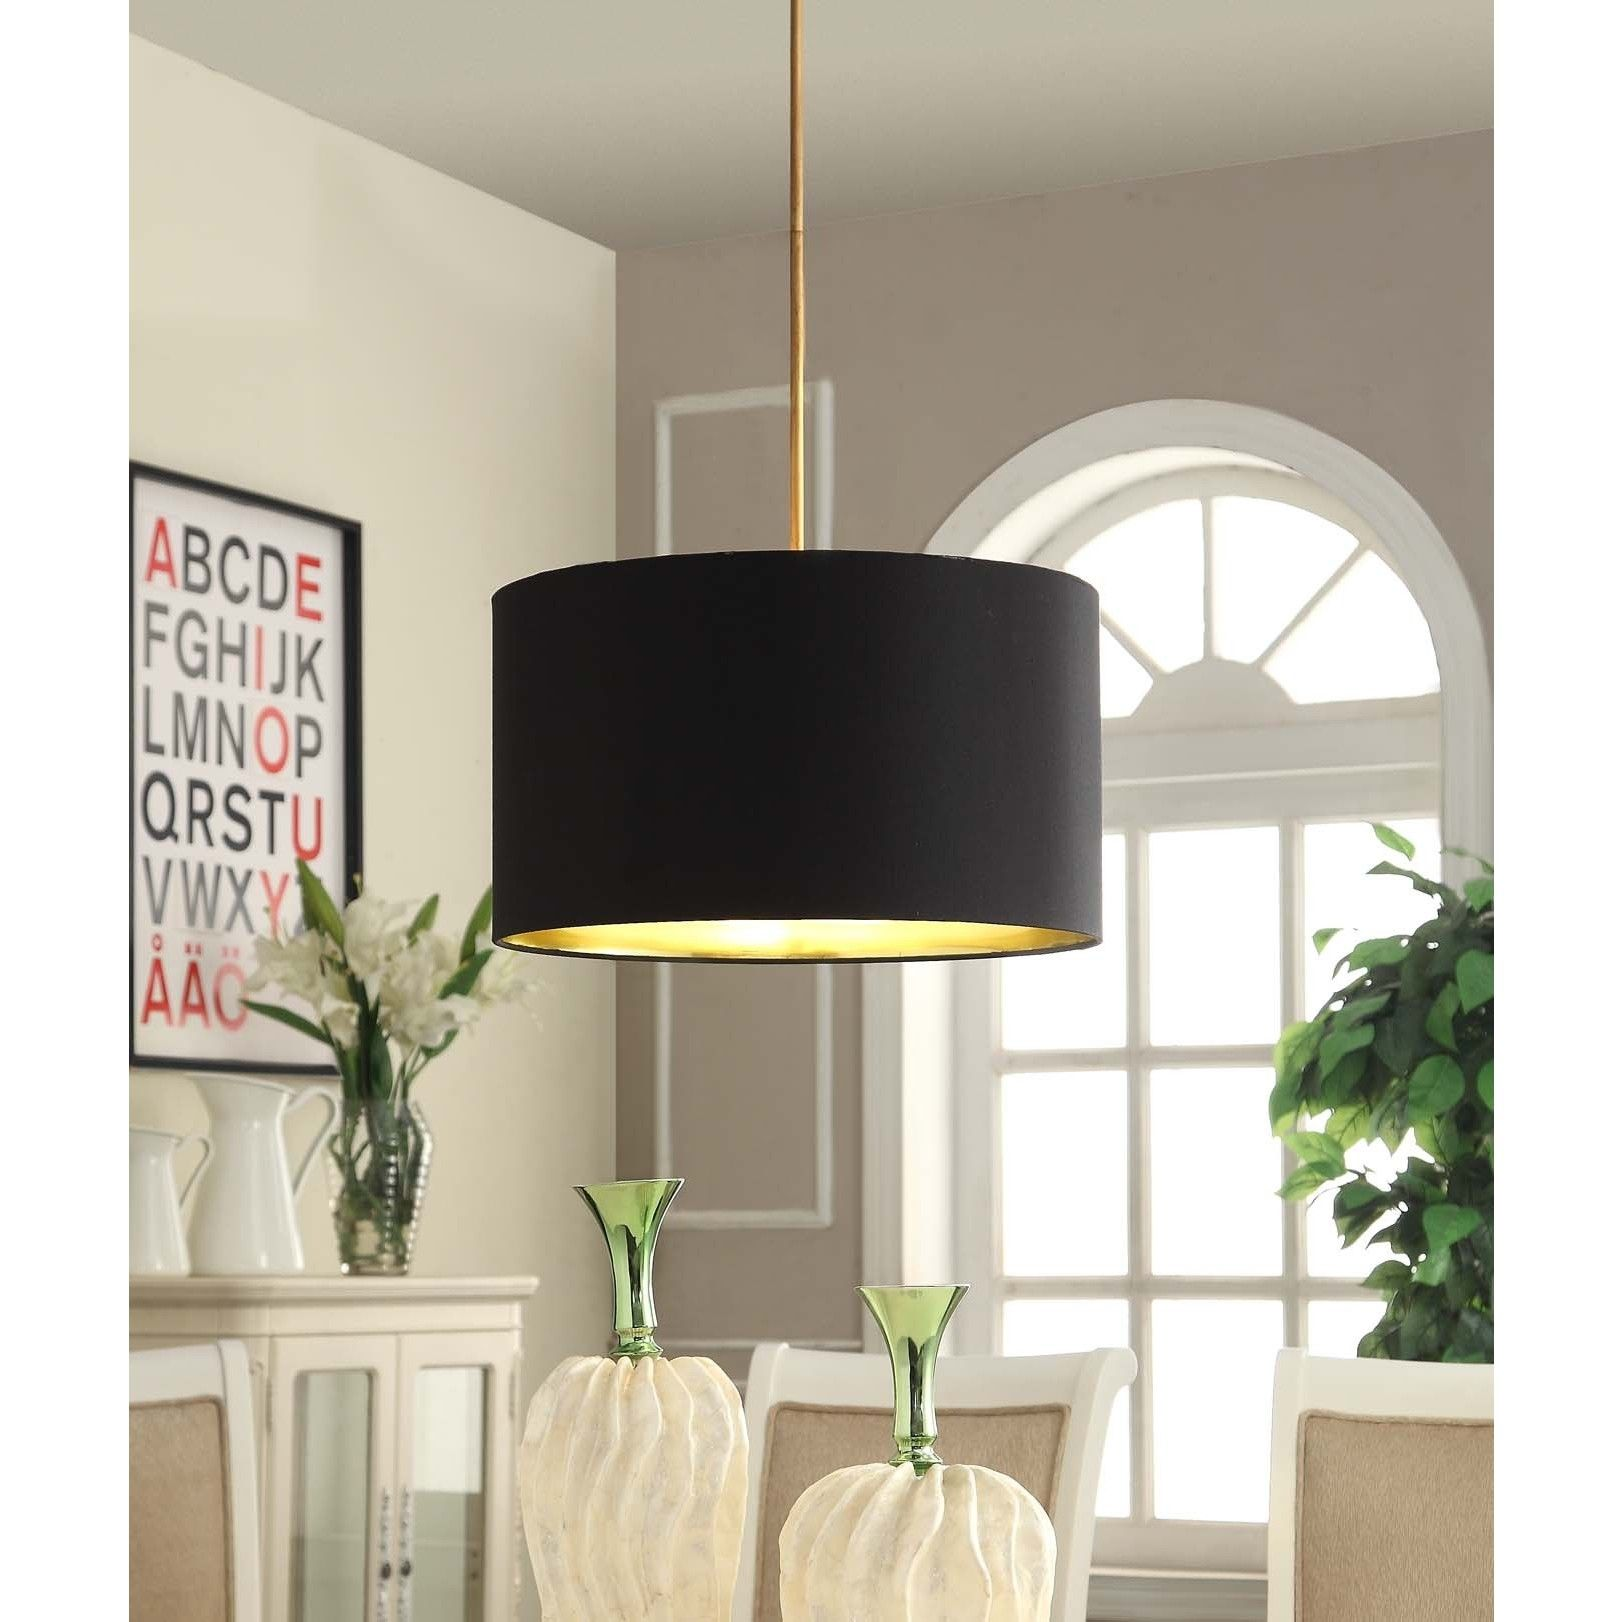 This lovely pendant features a black linen shade that is